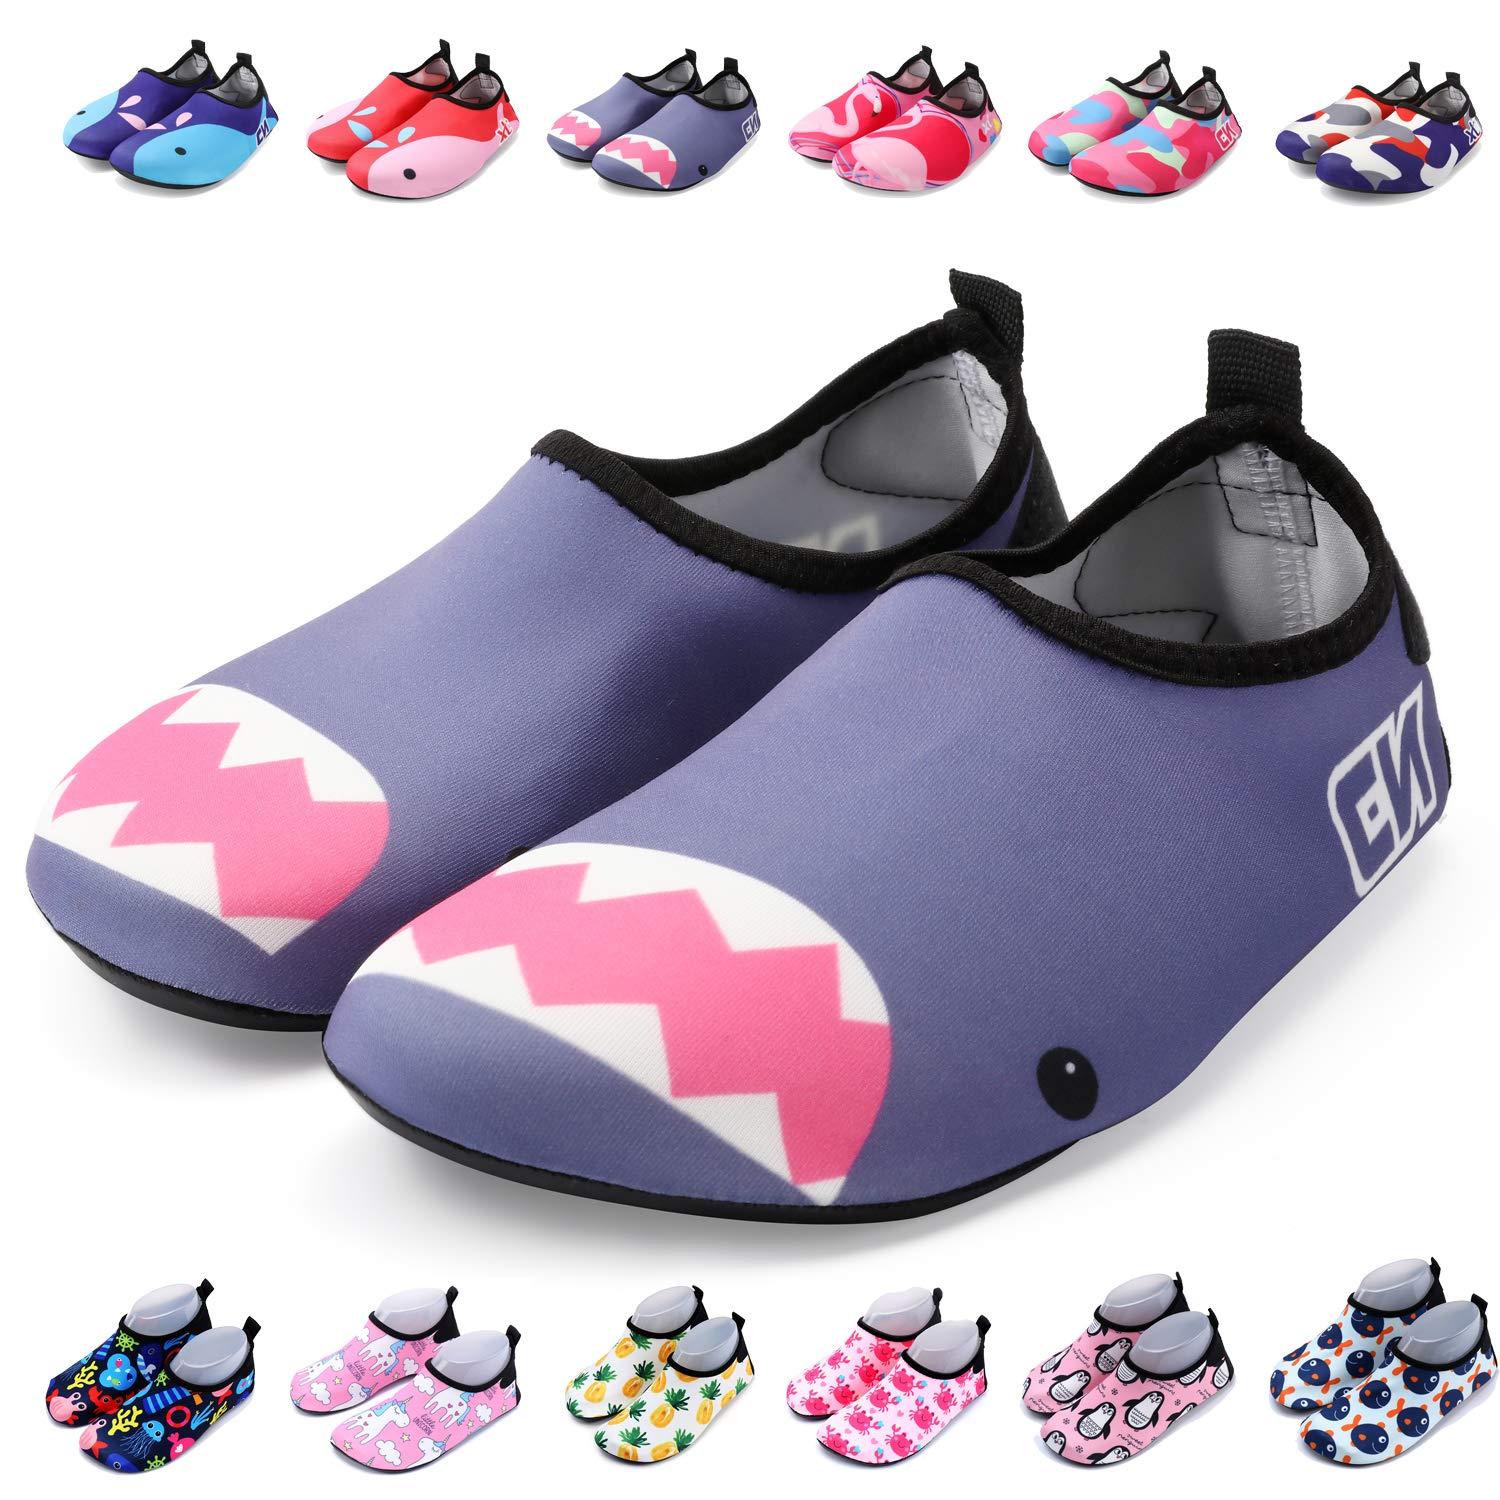 134a173f7 Galleon - Bridawn Kids Water Shoes Toddler Swim Shoes Quick Dry Non-Slip  Barefoot Aqua Socks For Beach Pool